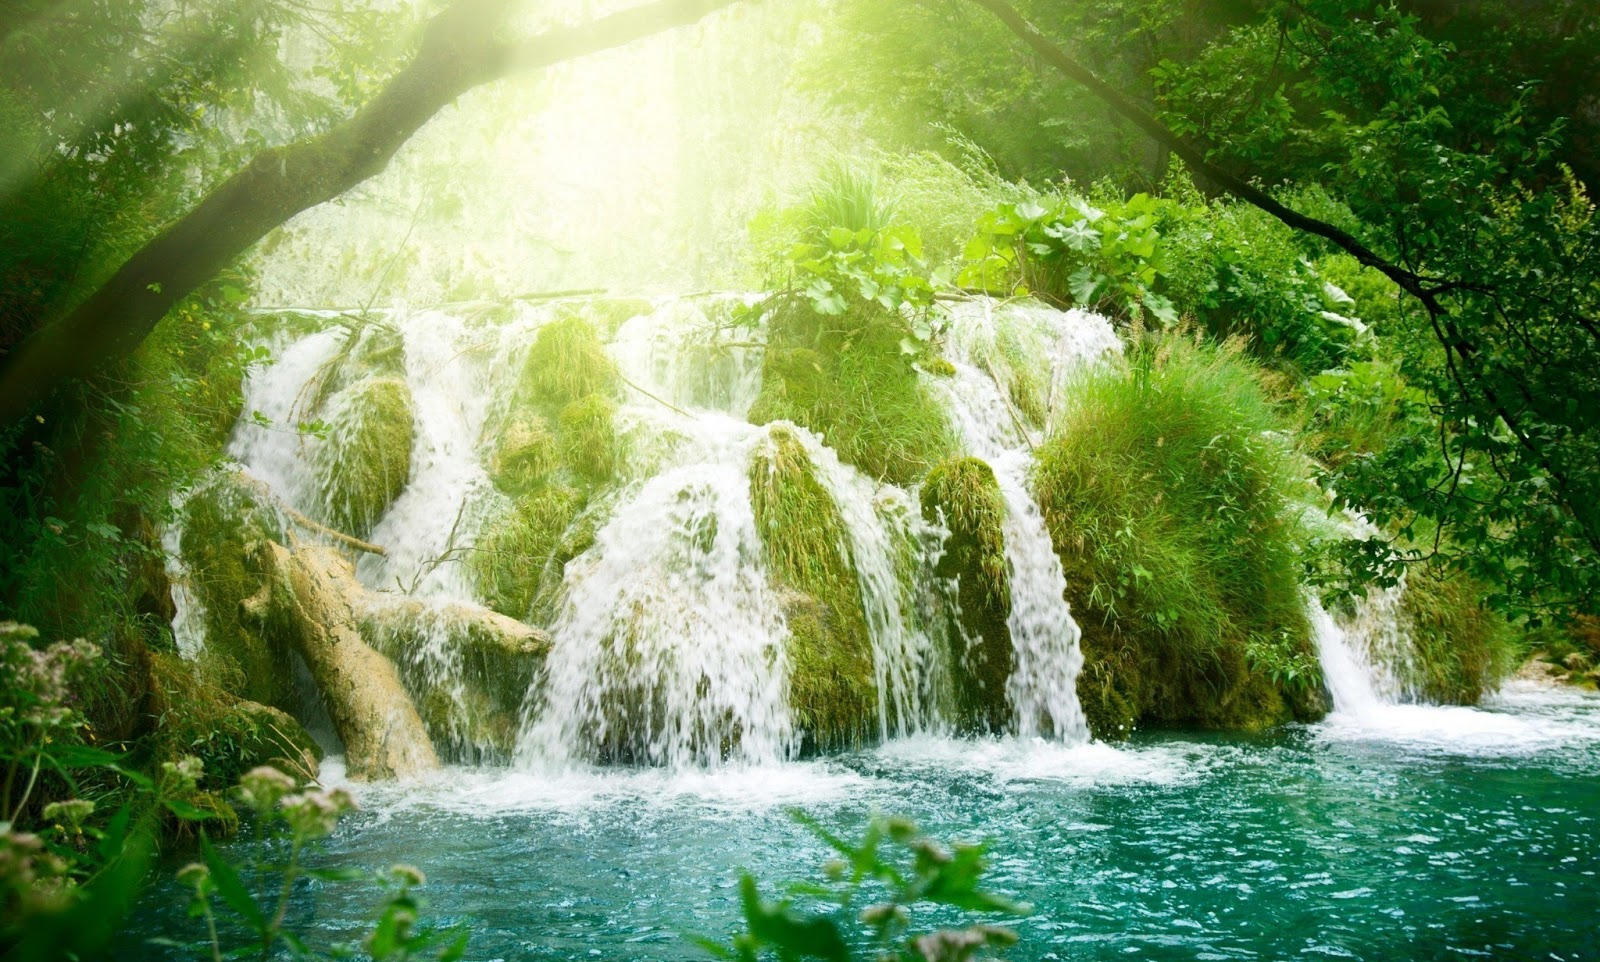 Amazing Nature Hd Wallpapers 1080p Hd Wallpapers